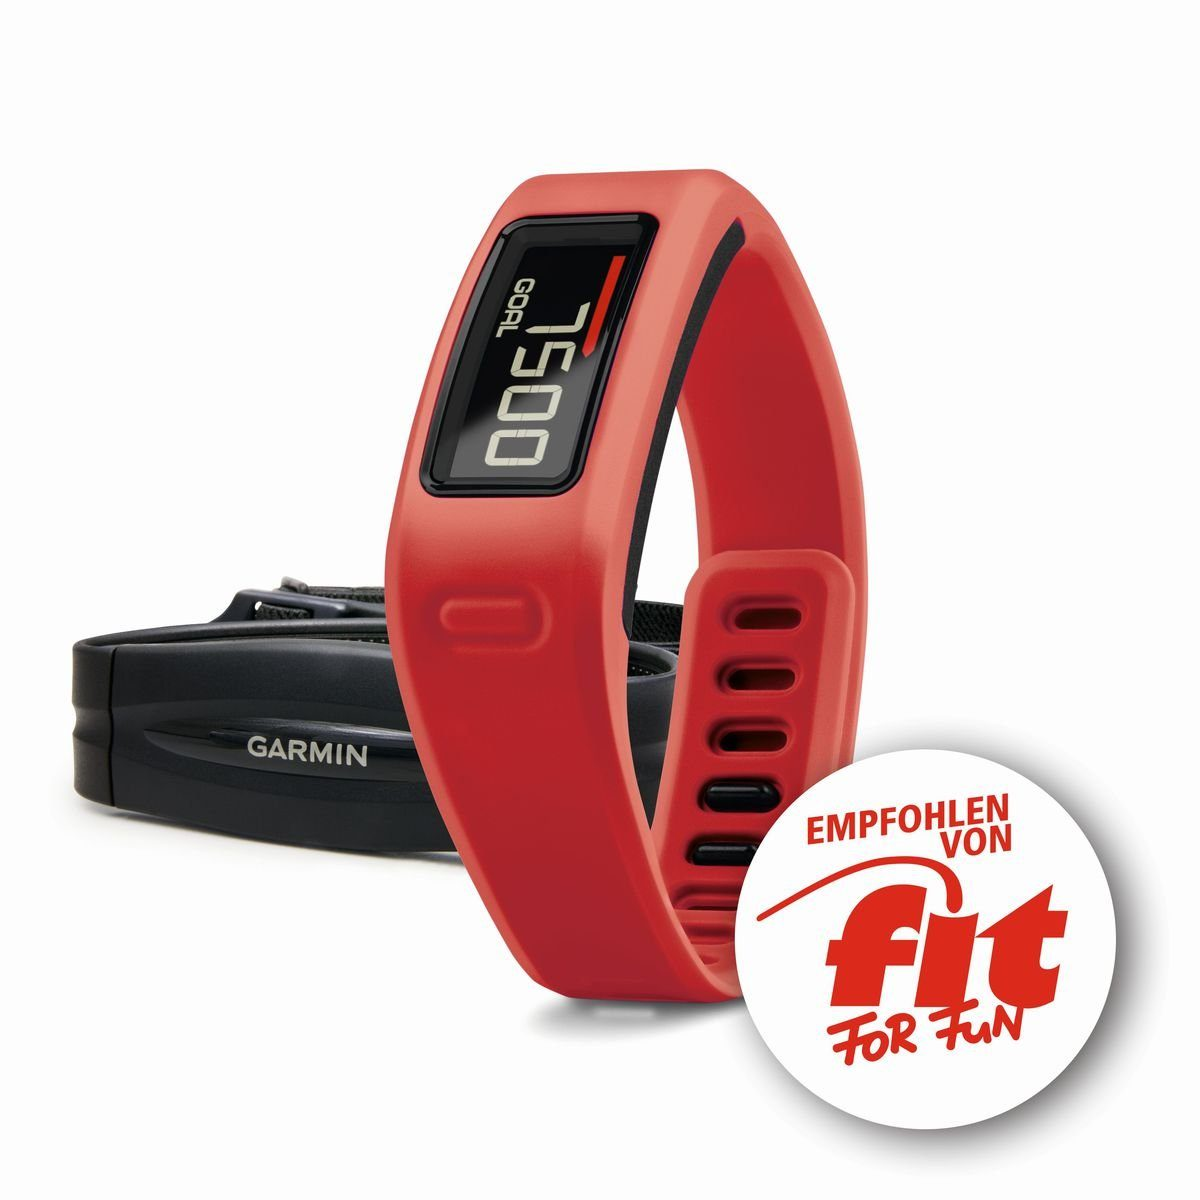 Garmin Activity Tracker »vivofit inkl. Brustgurt(fit FOR FUN)«